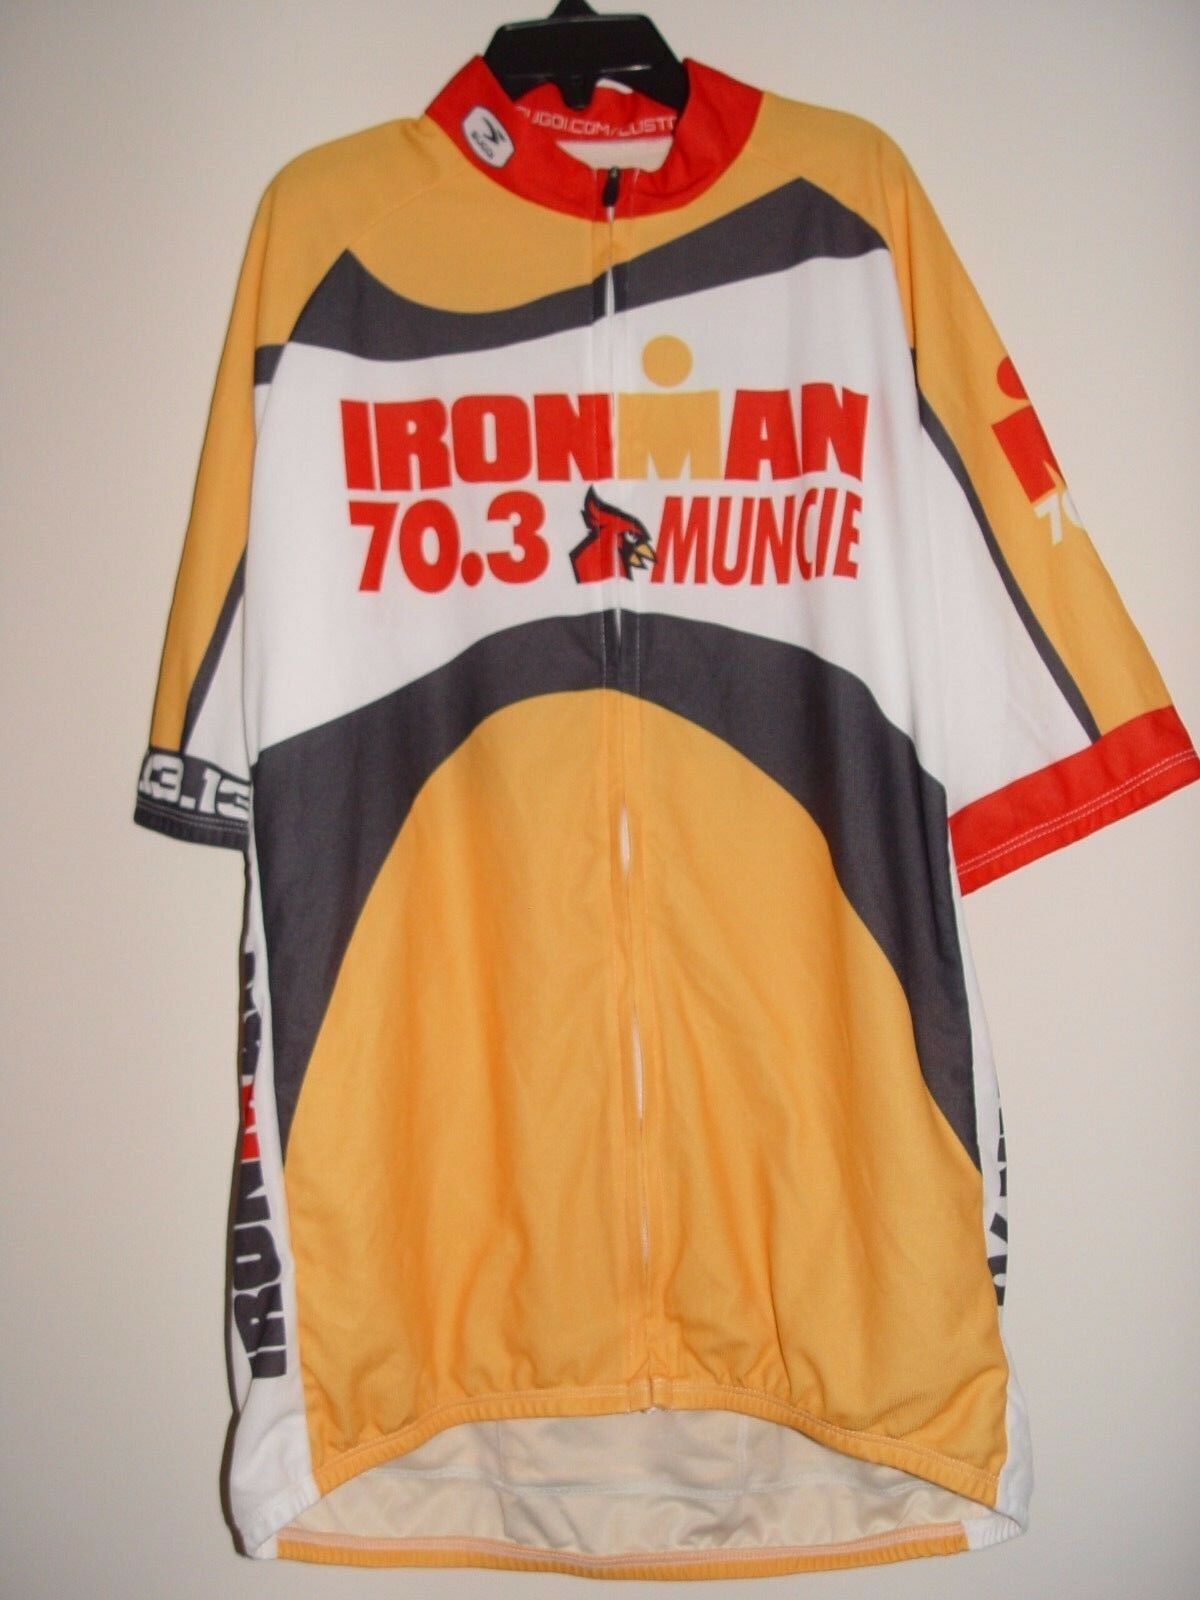 NEW IRONMAN 70.3 Muncie Sugoi Men's Cycling Jersey Size Medium